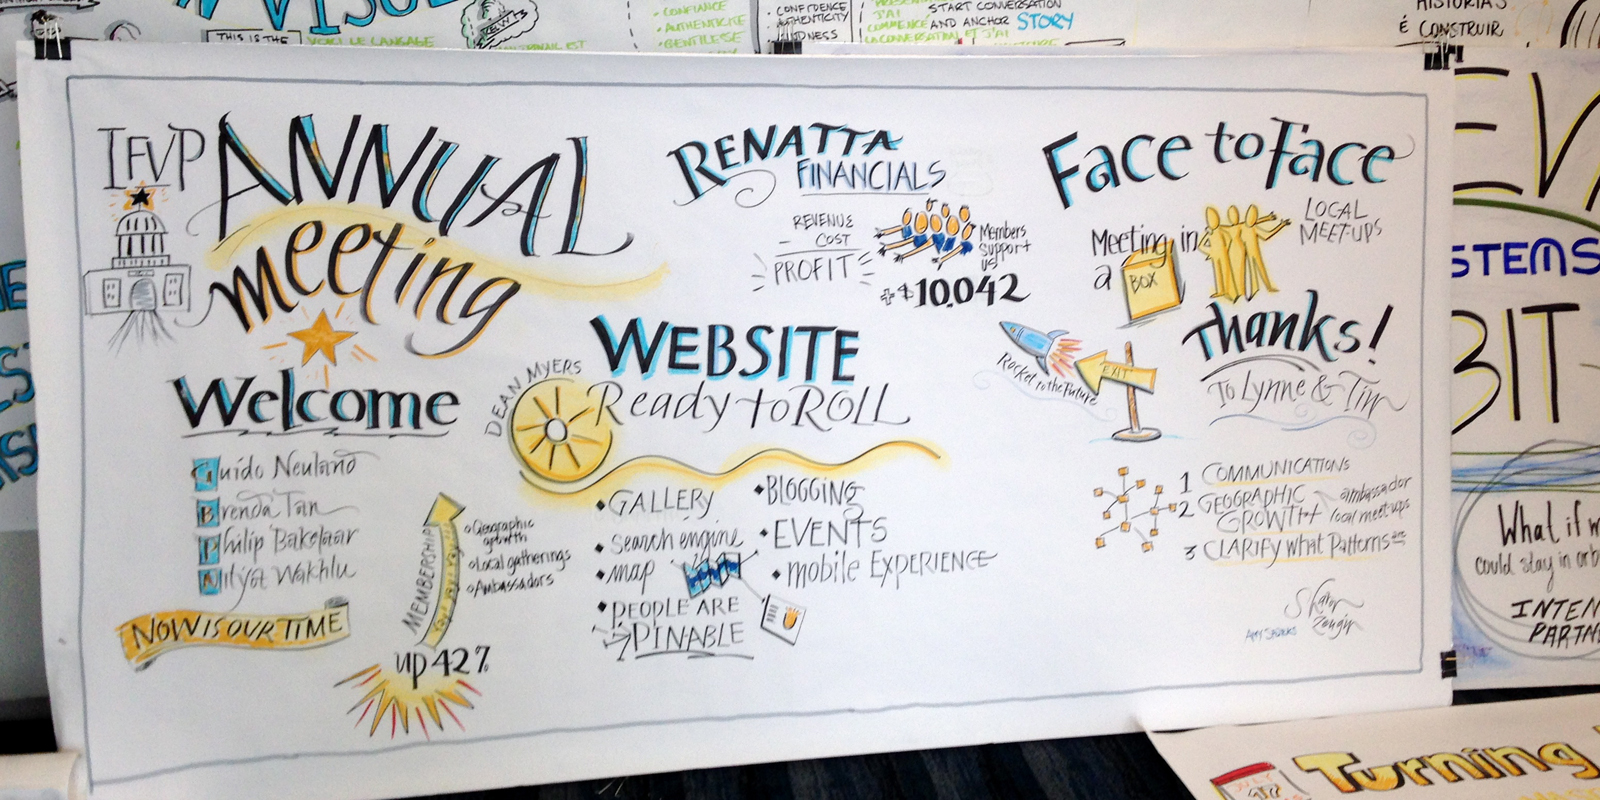 Graphic Recording for IFVP Annual Meeting at Austin conference